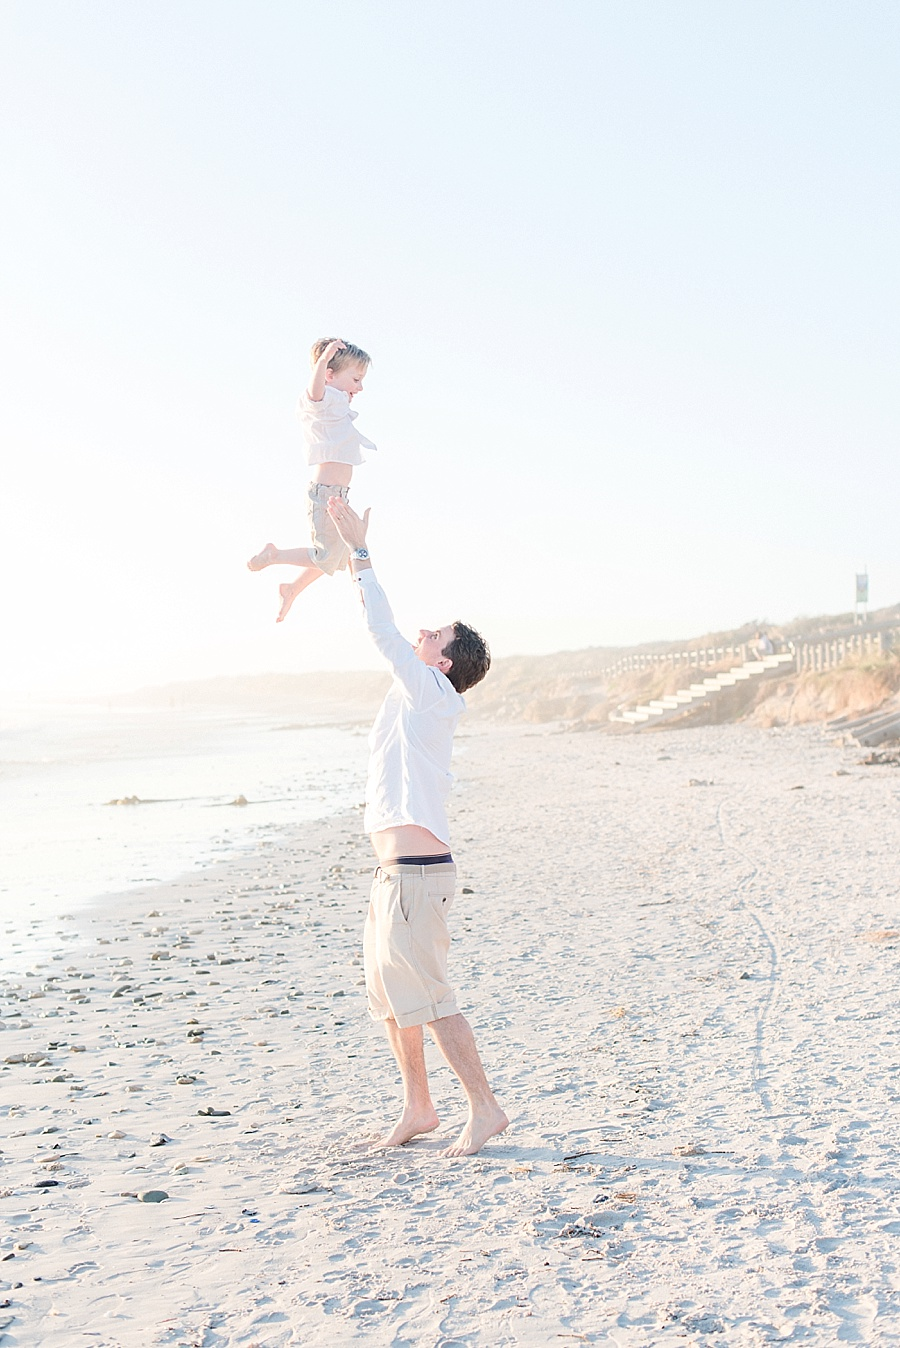 Darren Bester - Cape Town - Family - Lifestyle - Photographer - Beach - Natalie and Travis_0012.jpg